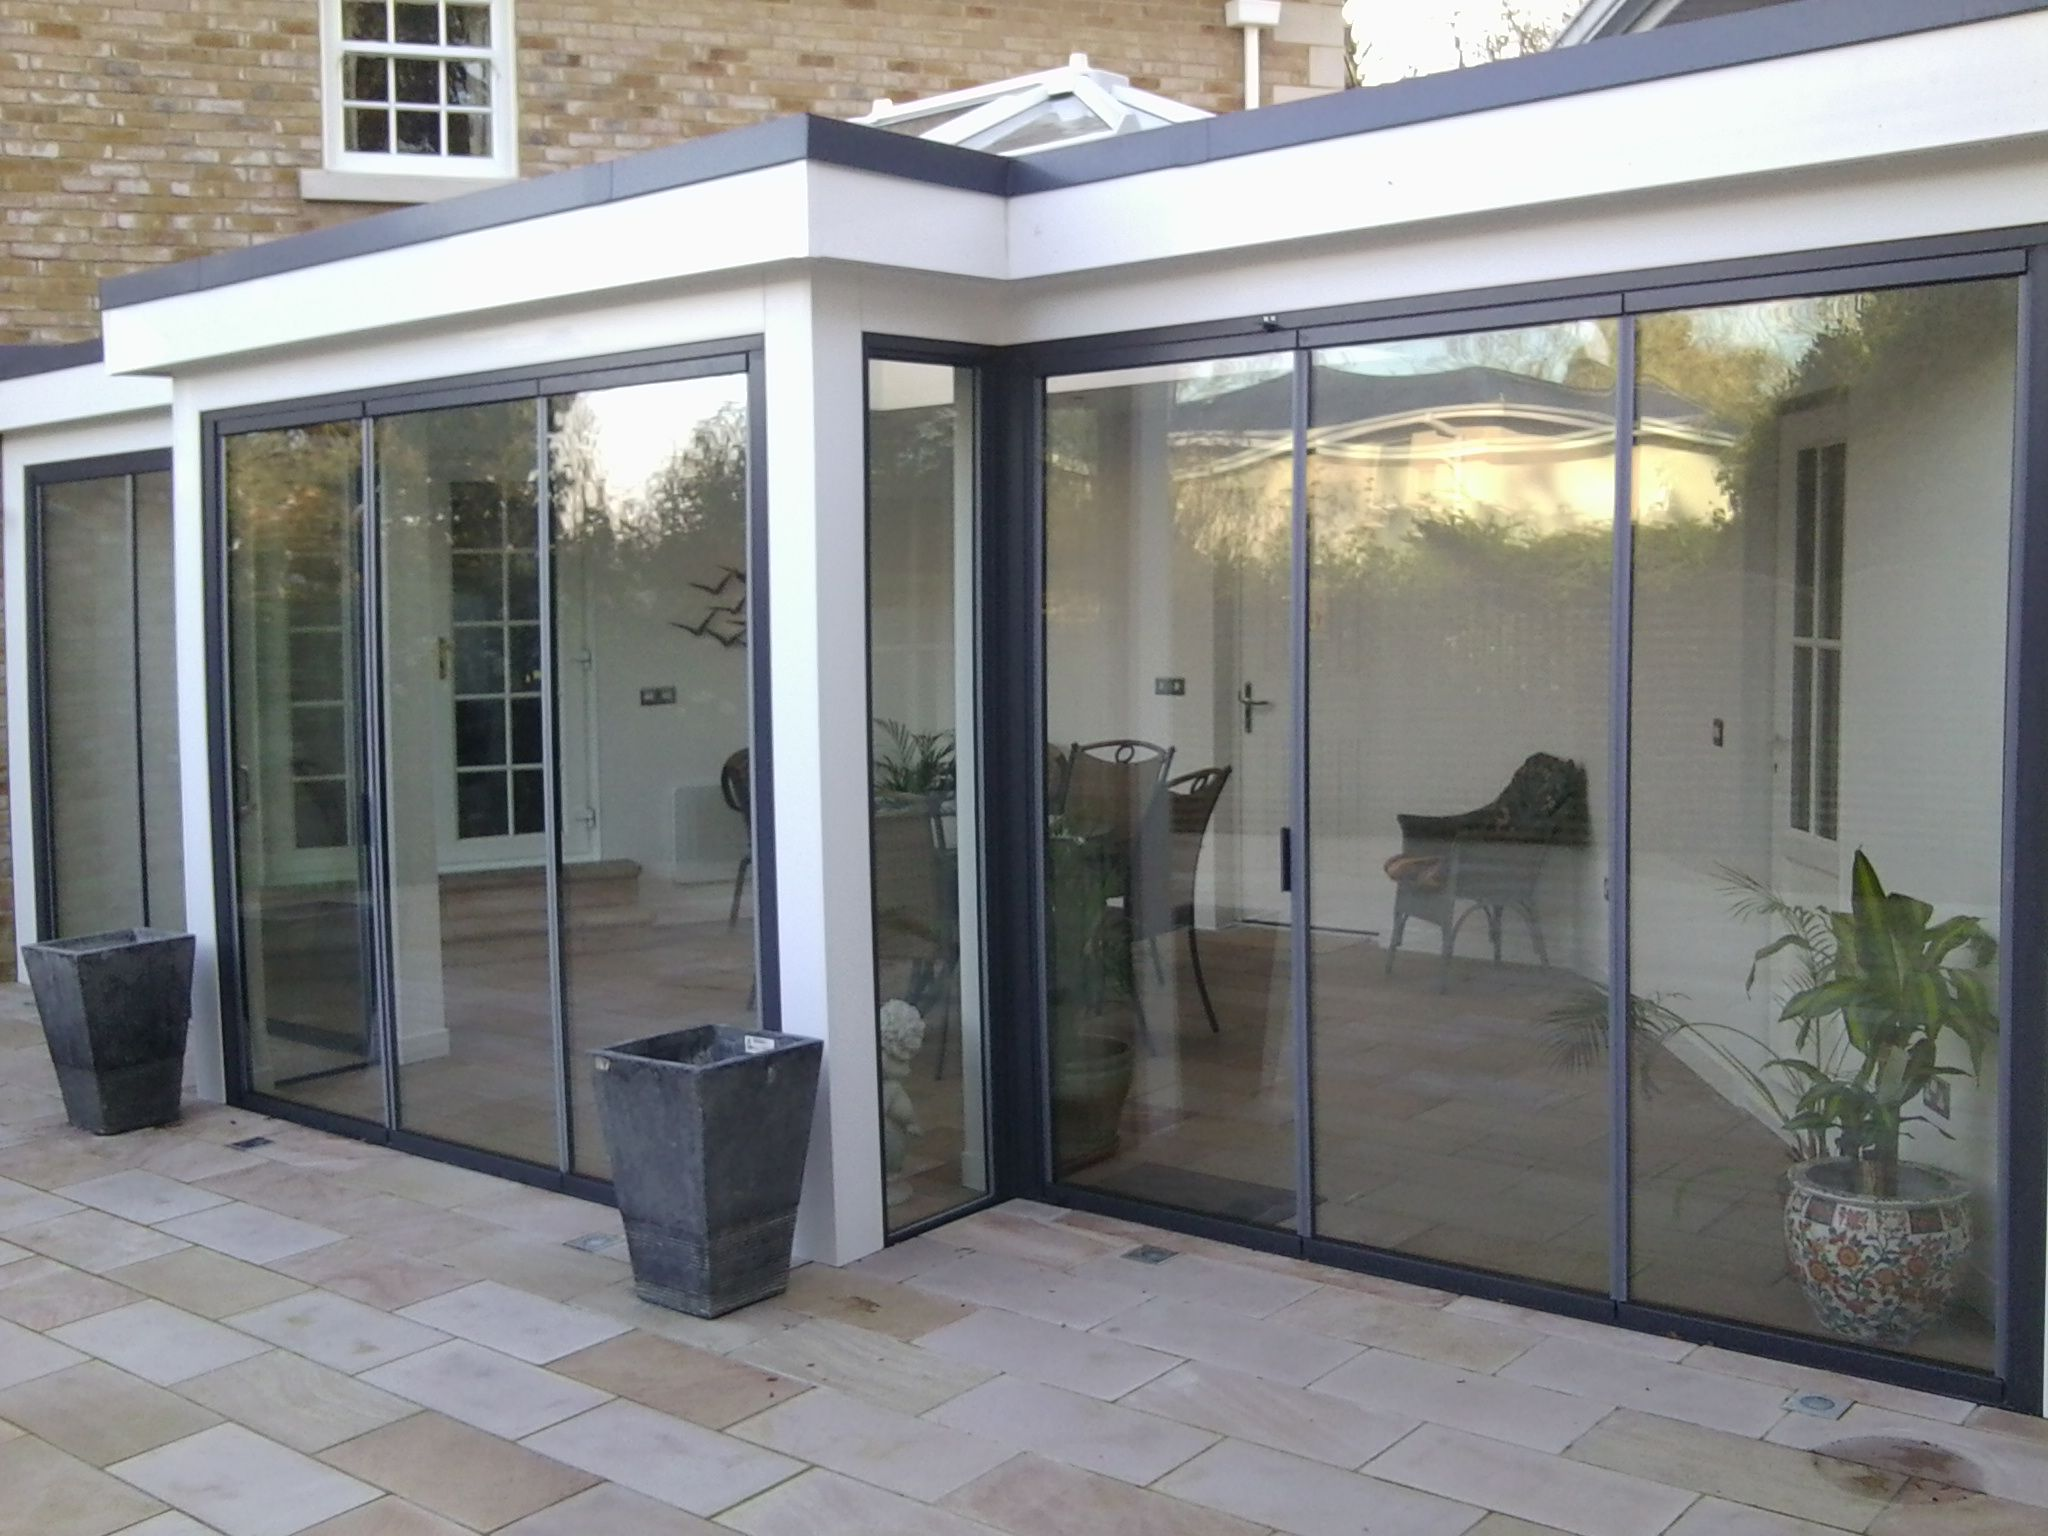 Frameless Sliding Glass Doors Patio Google Search Onslow Mews